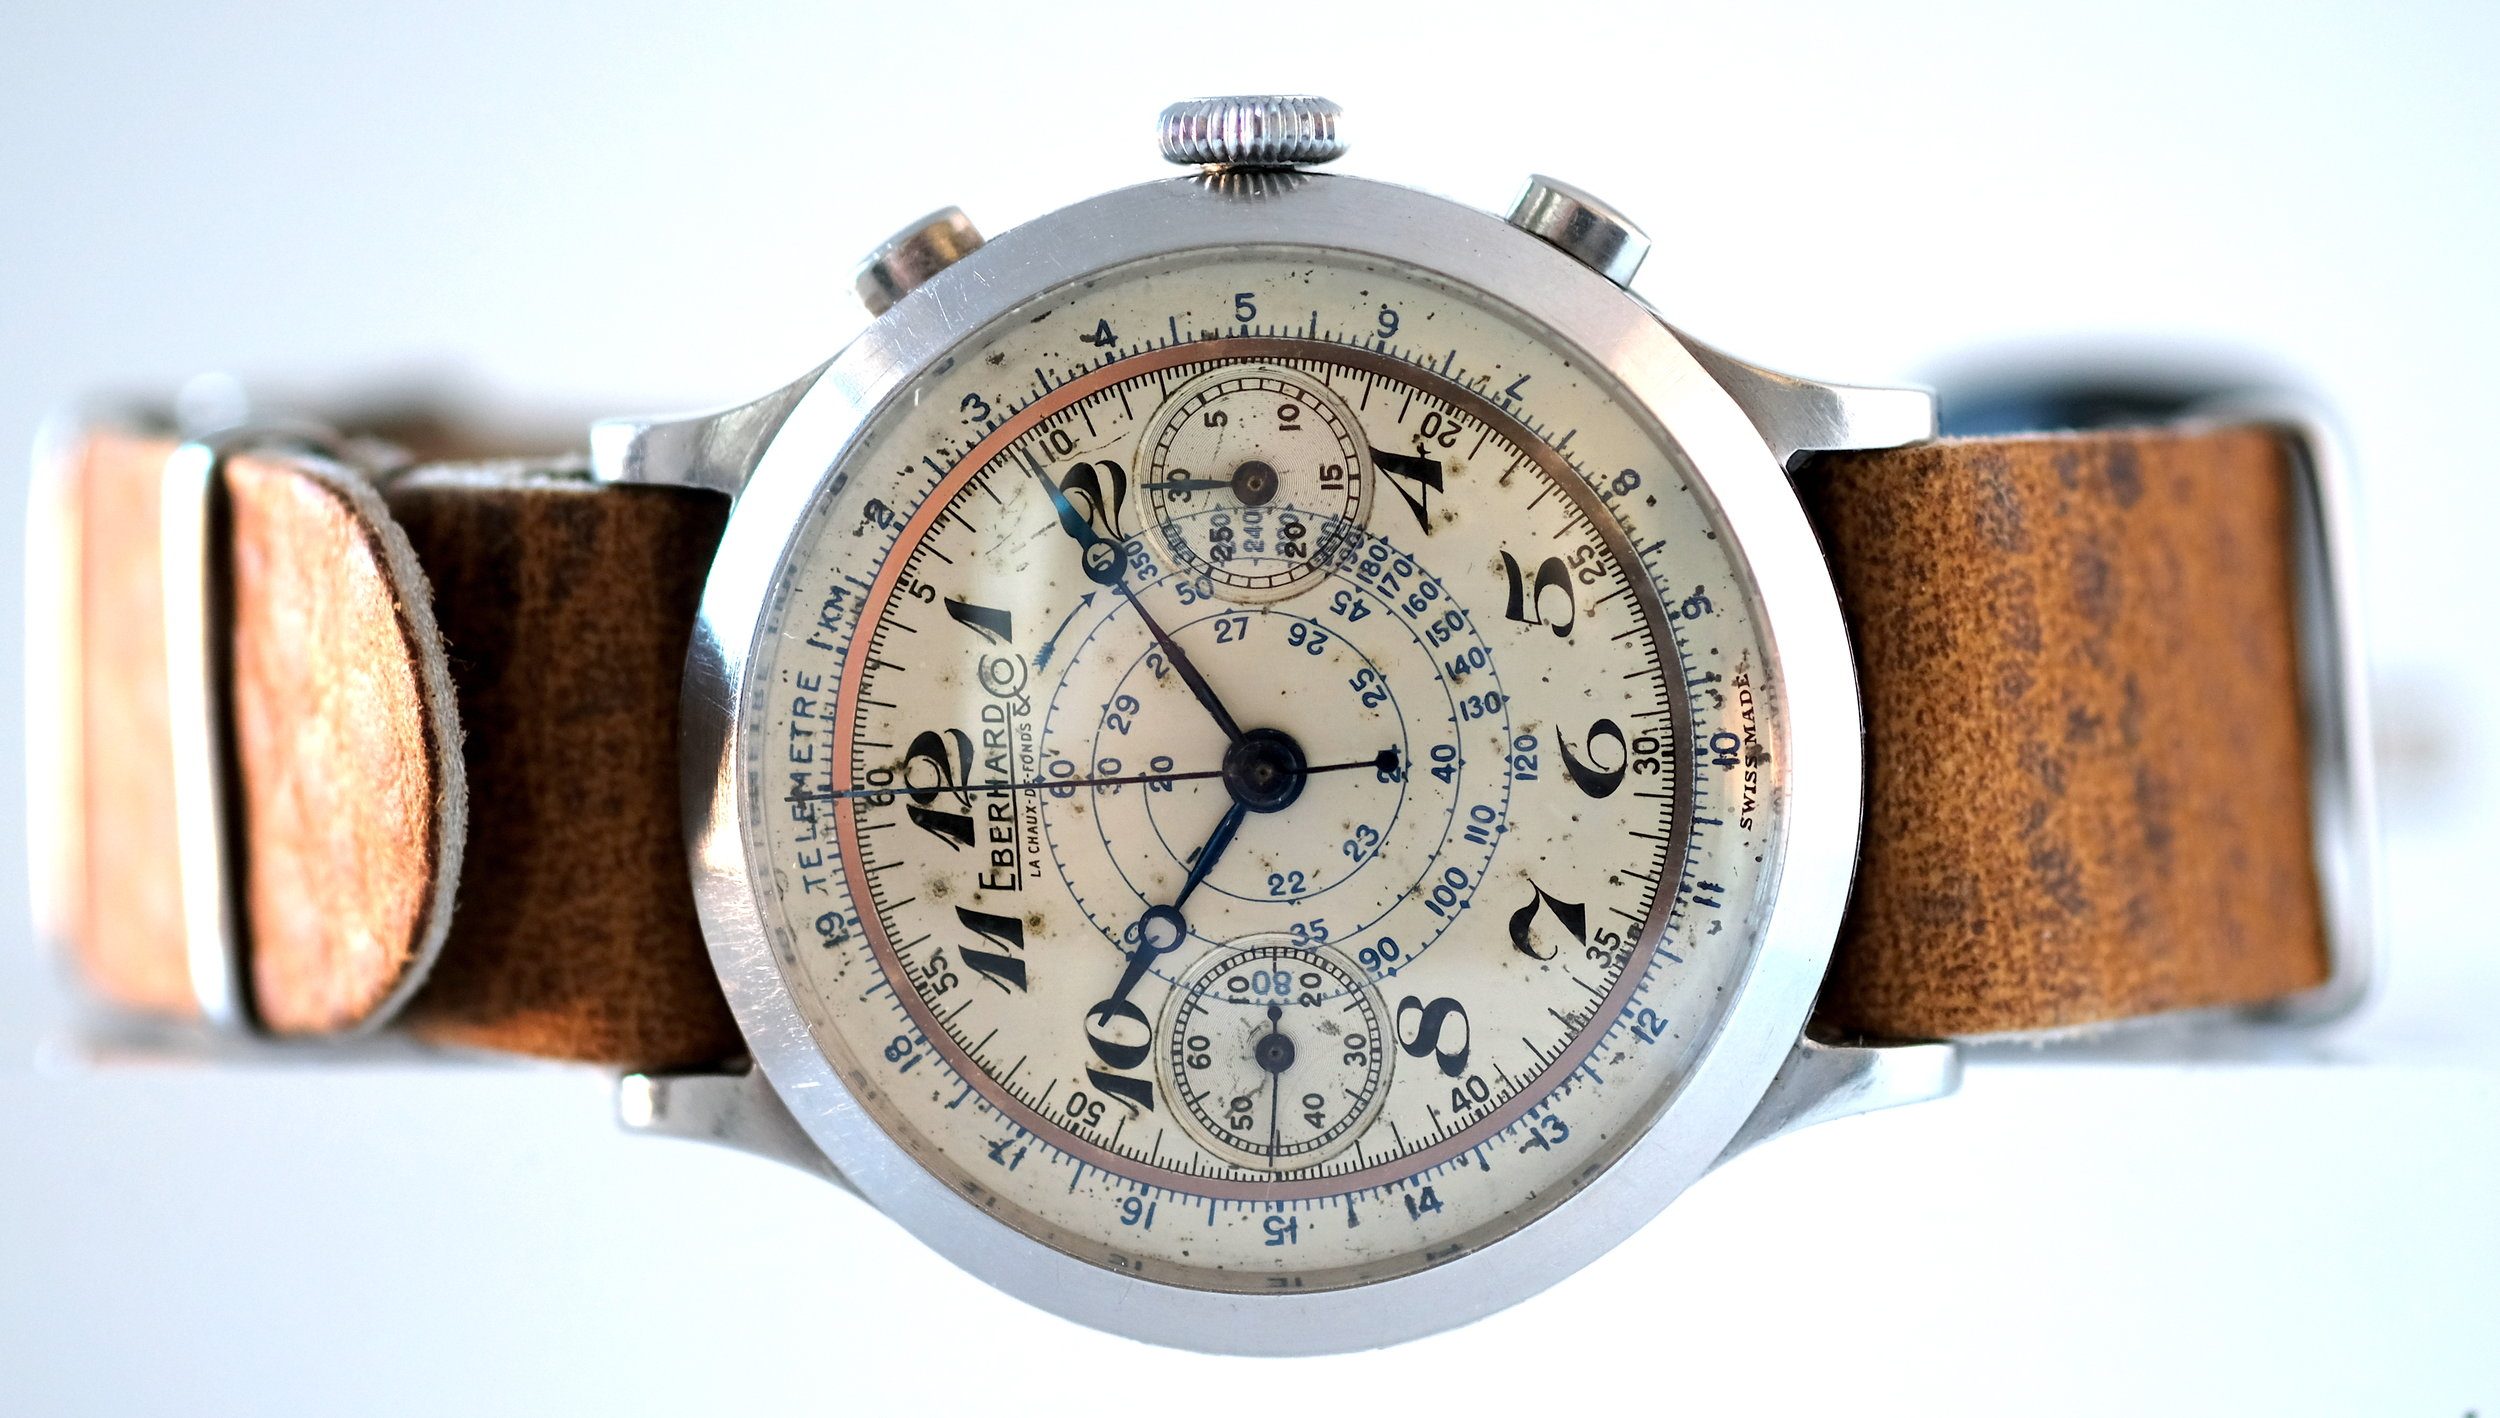 Eberhard & Co. Pre-Extra fort two tone dial   SOLD